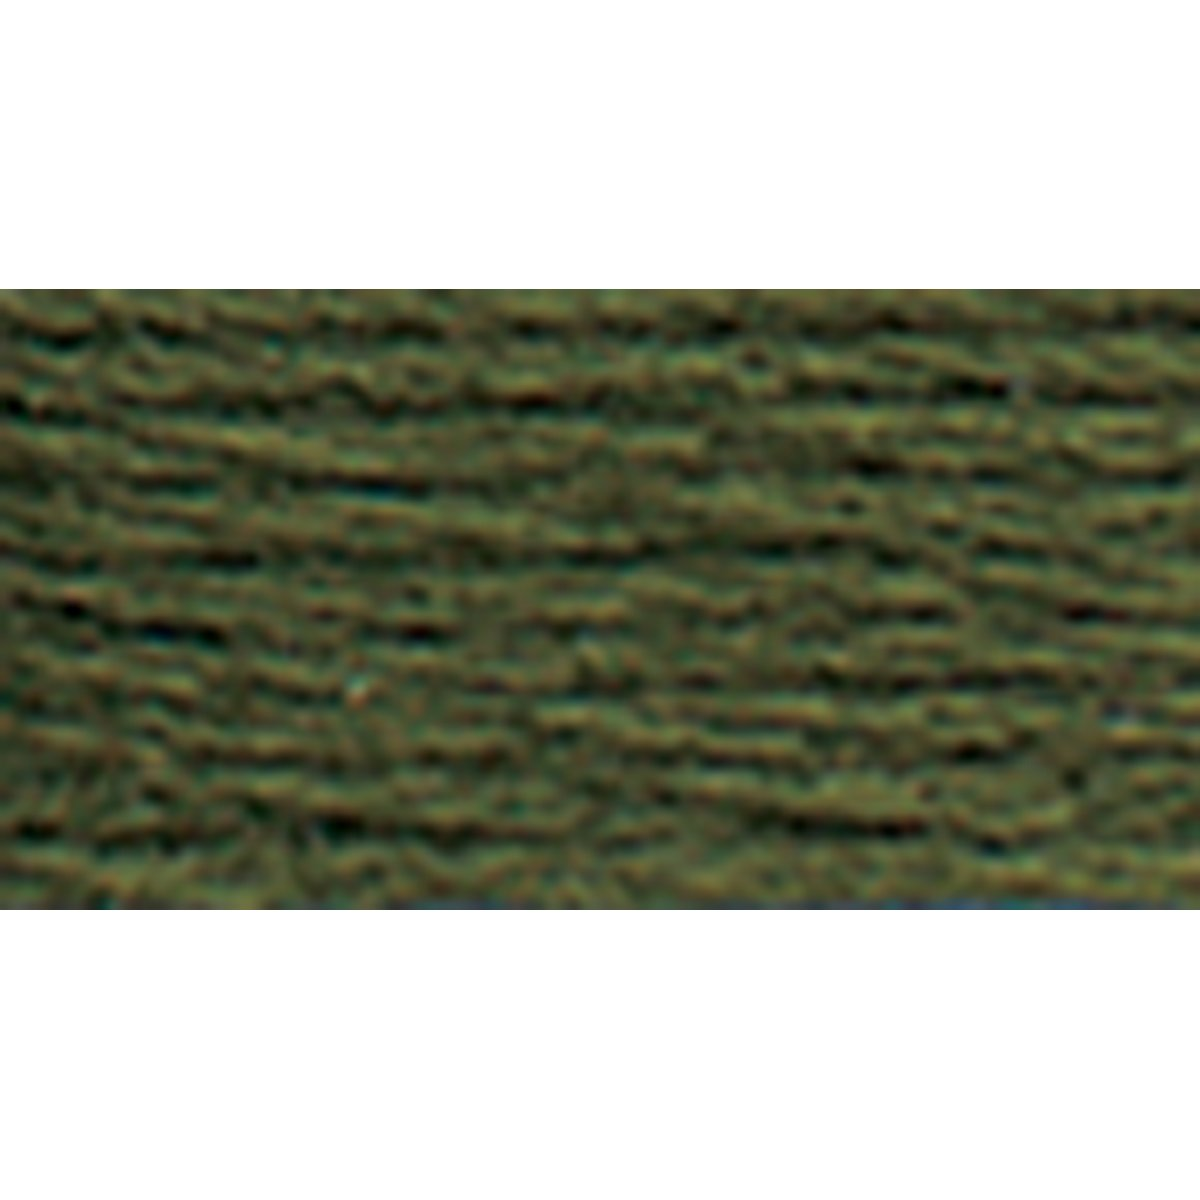 DMC 117-935 6 Strand Embroidery Cotton Floss, Dark Avocado Green, 8.7-Yard Notions - In Network